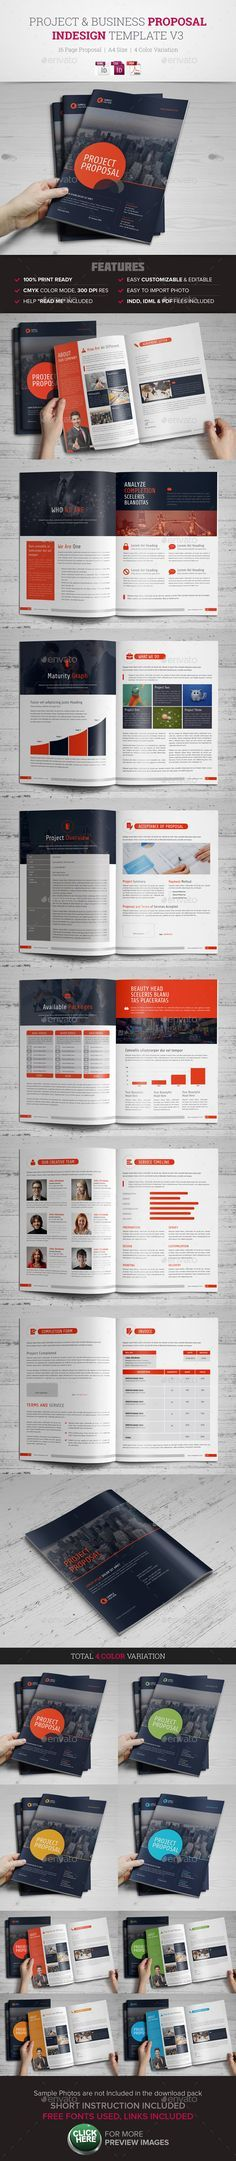 The 25+ best Business proposal template ideas on Pinterest - proposal plan template